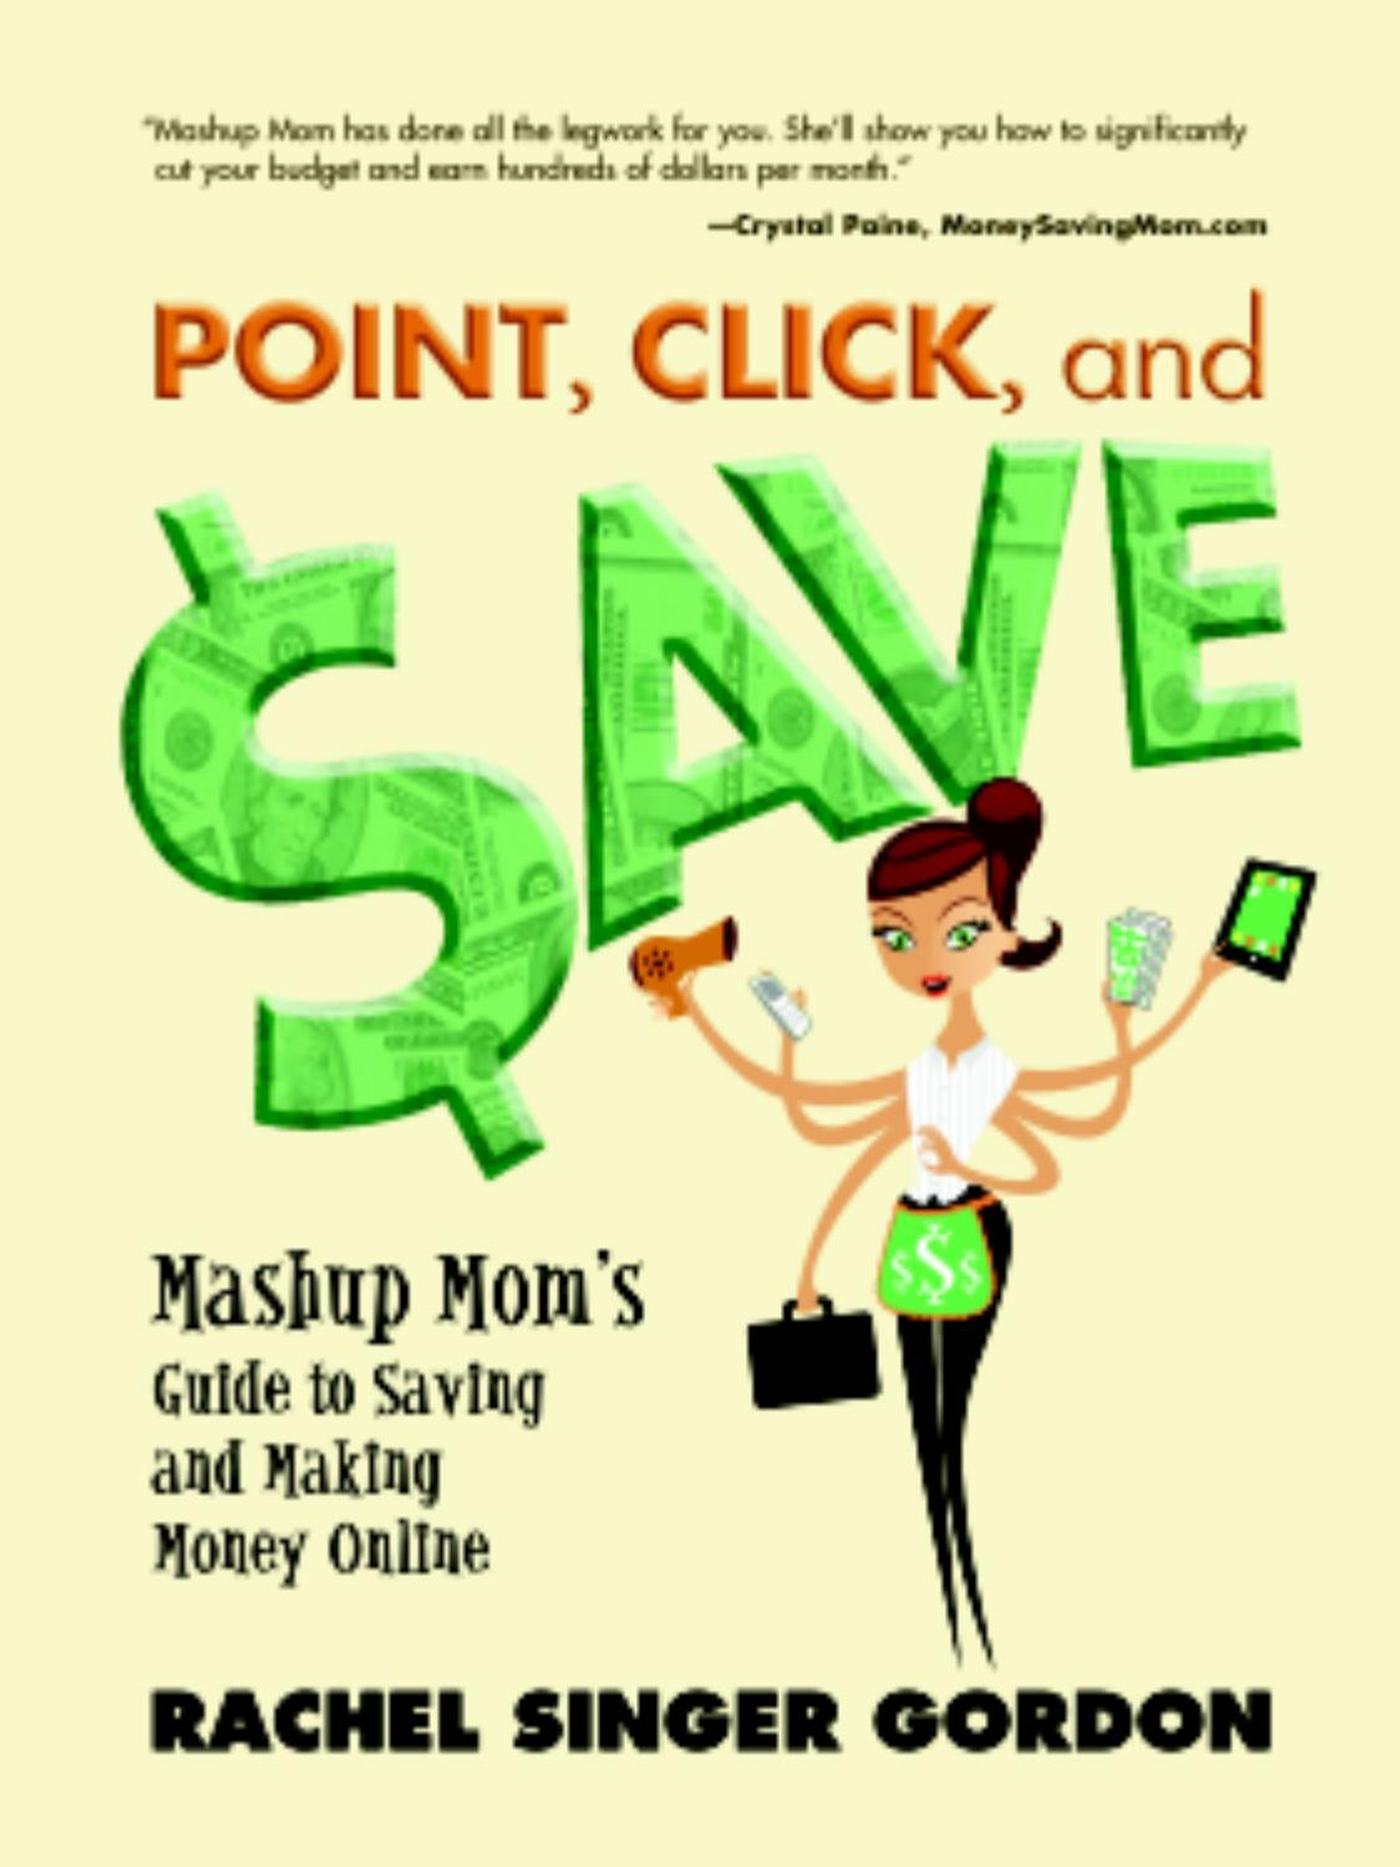 Point, Click, and Save